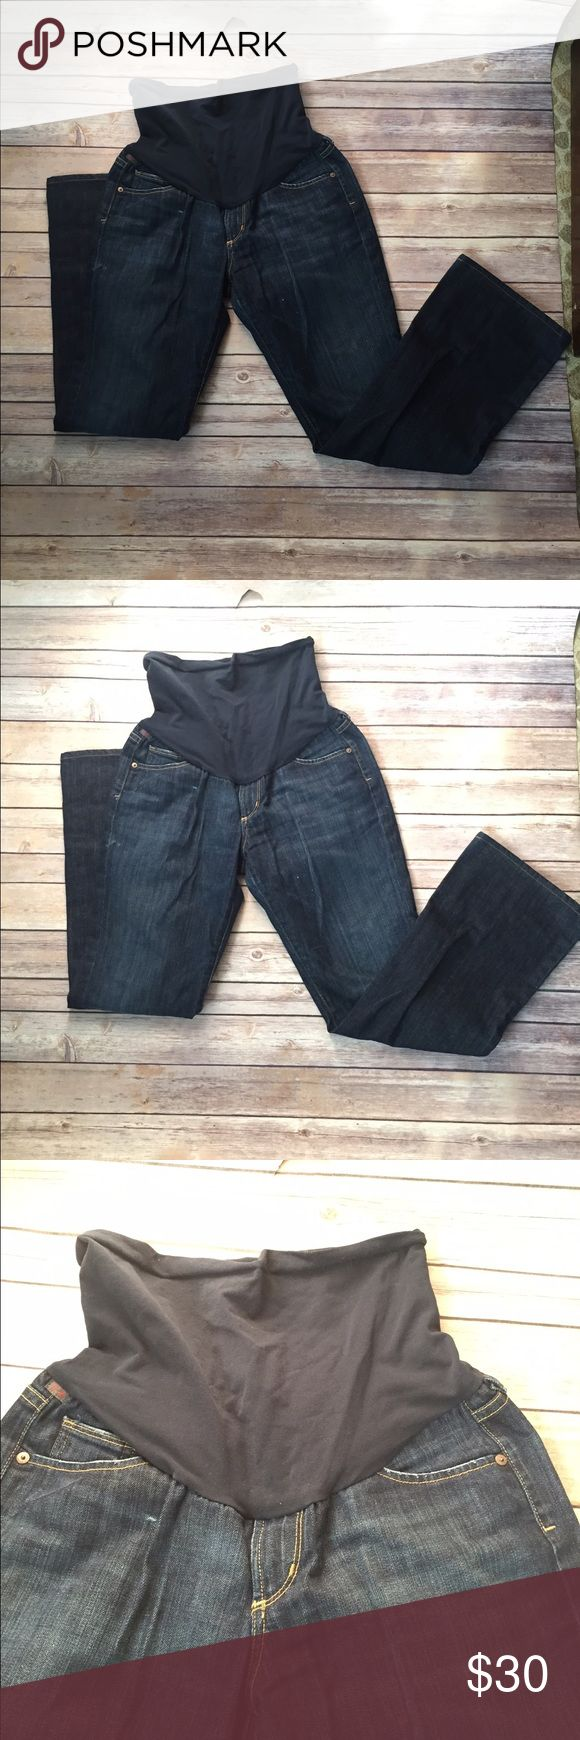 Citizens for Humanity dark wash jeans Citizens for Humanity dark wash boot cut/slight flare maternity jeans. These are practically new. Very good condition. Fit well very comfy. Super comfy waist band. Citizens of Humanity Jeans Boot Cut